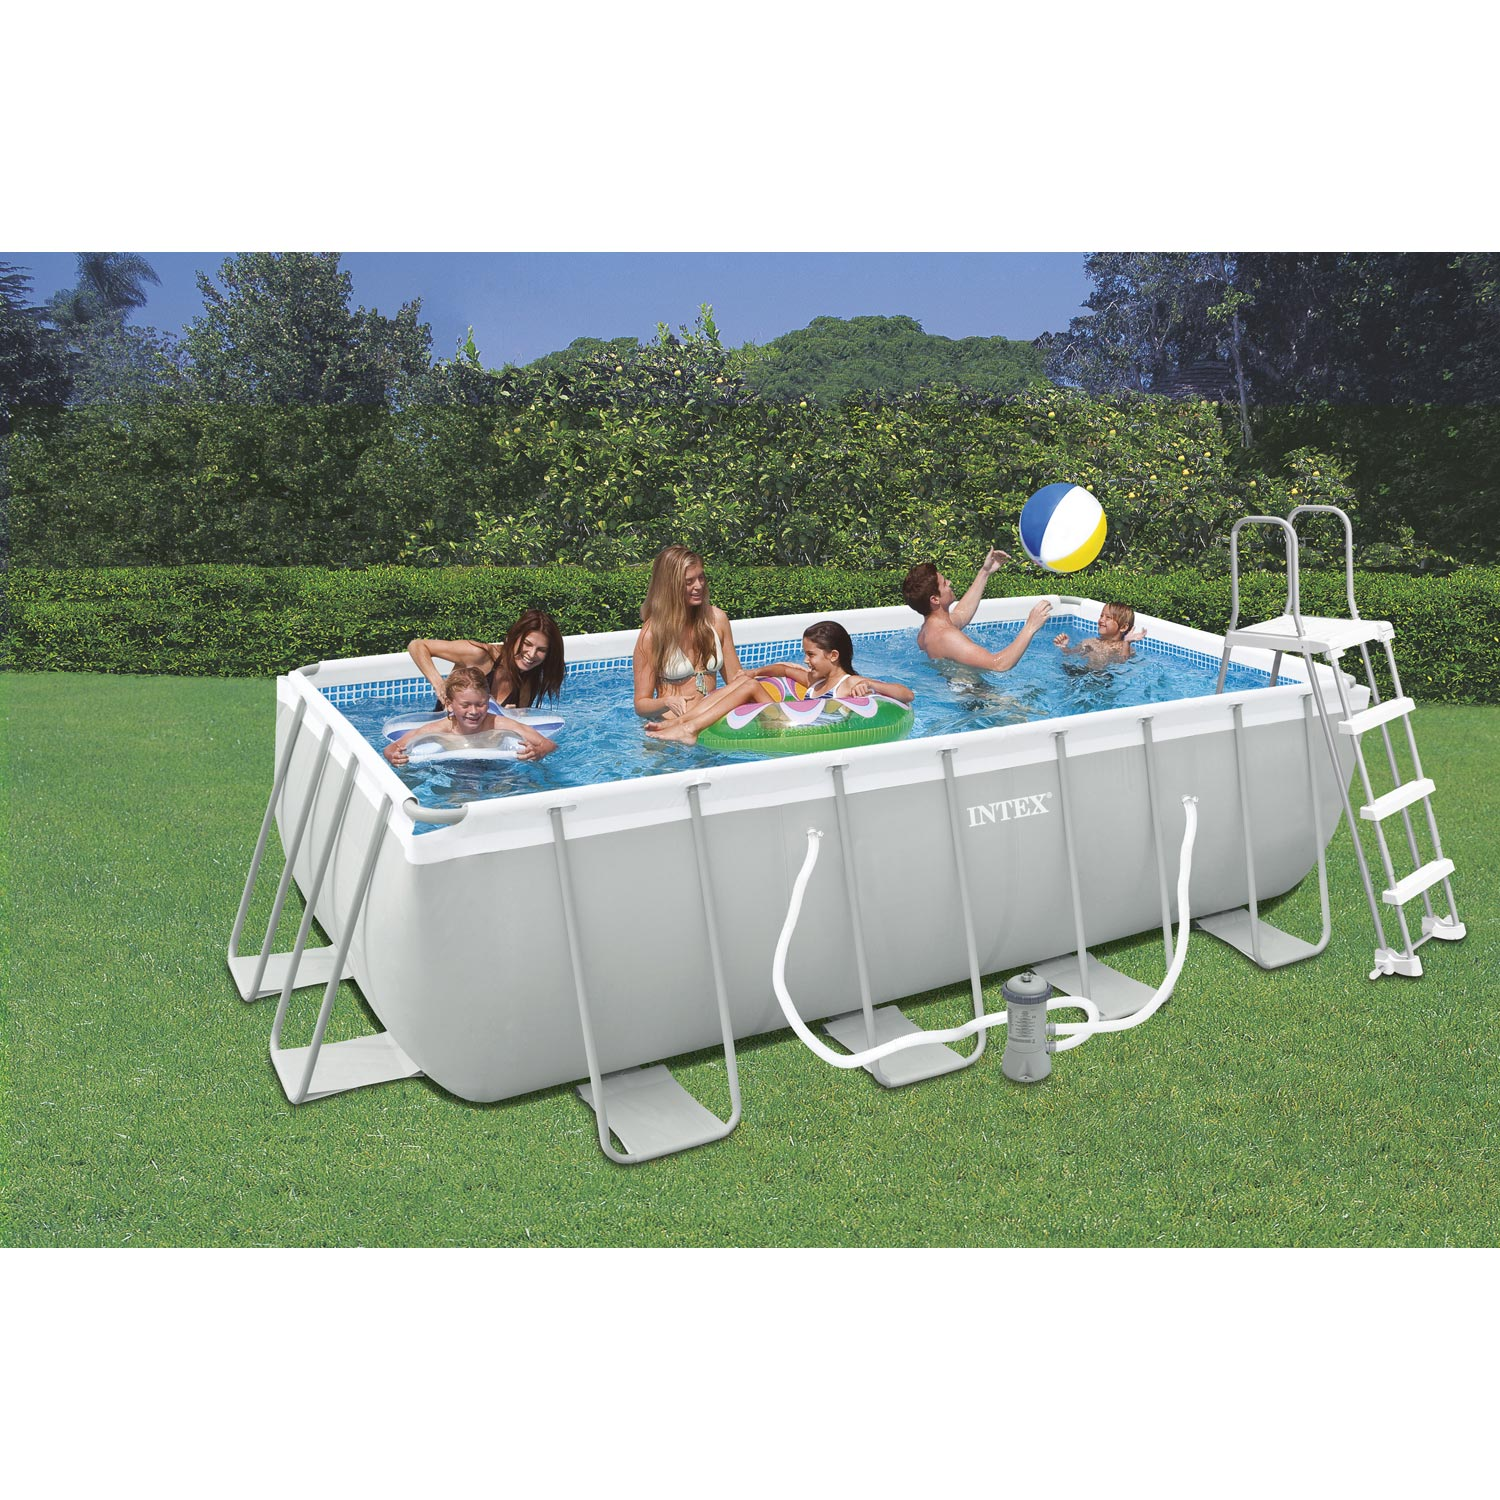 Piscine hors sol tubulaire s rie sp ciale intex rectangulaire - Sel piscine leroy merlin ...